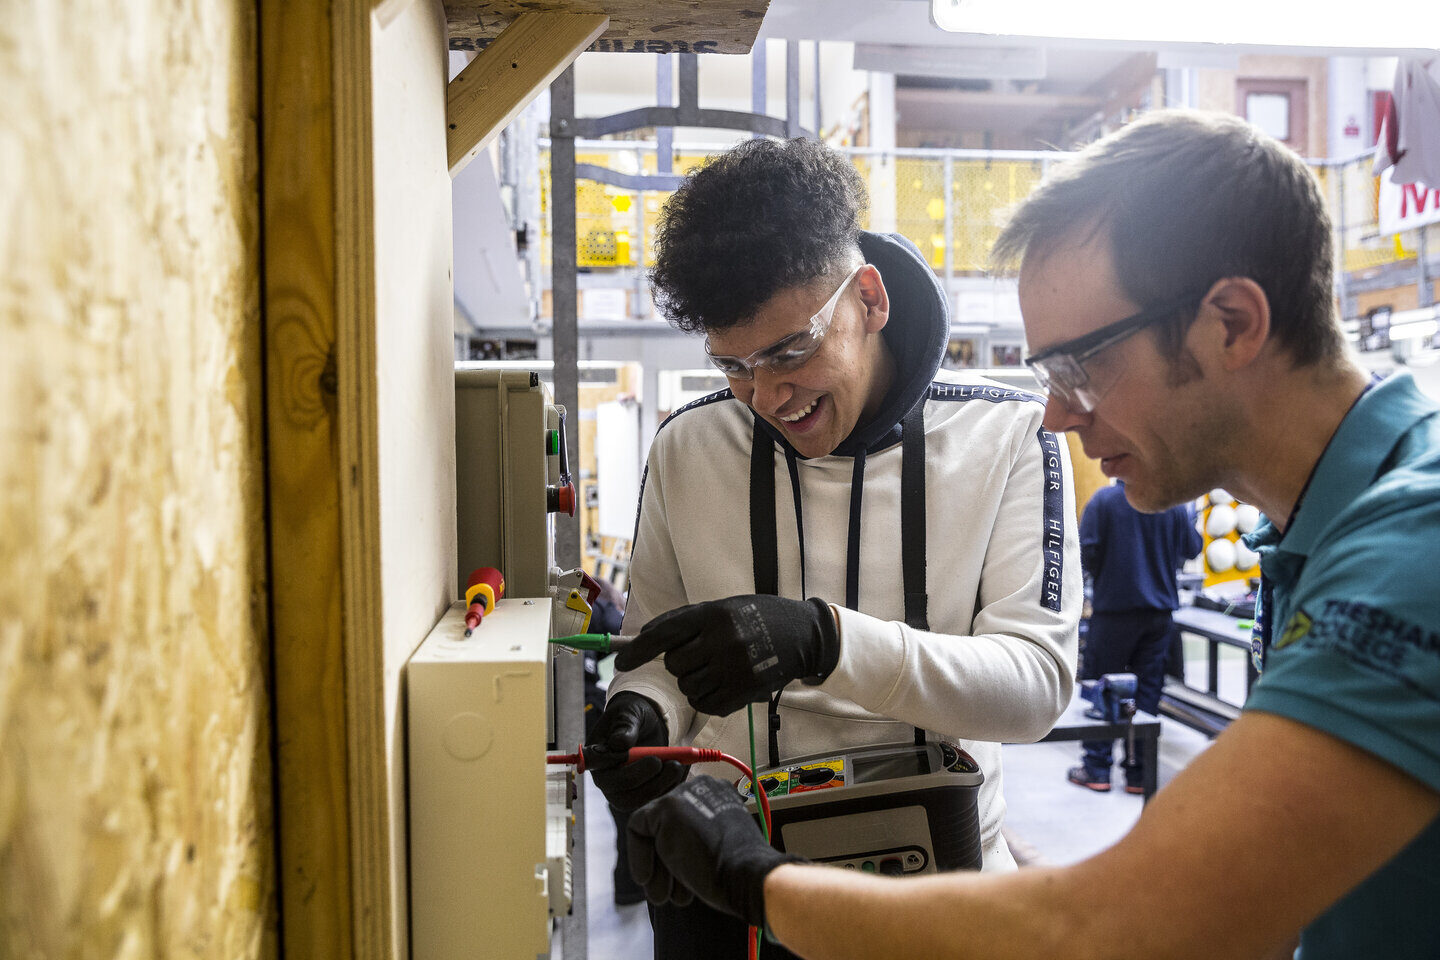 Electrical Installation student and tutor Tresham College